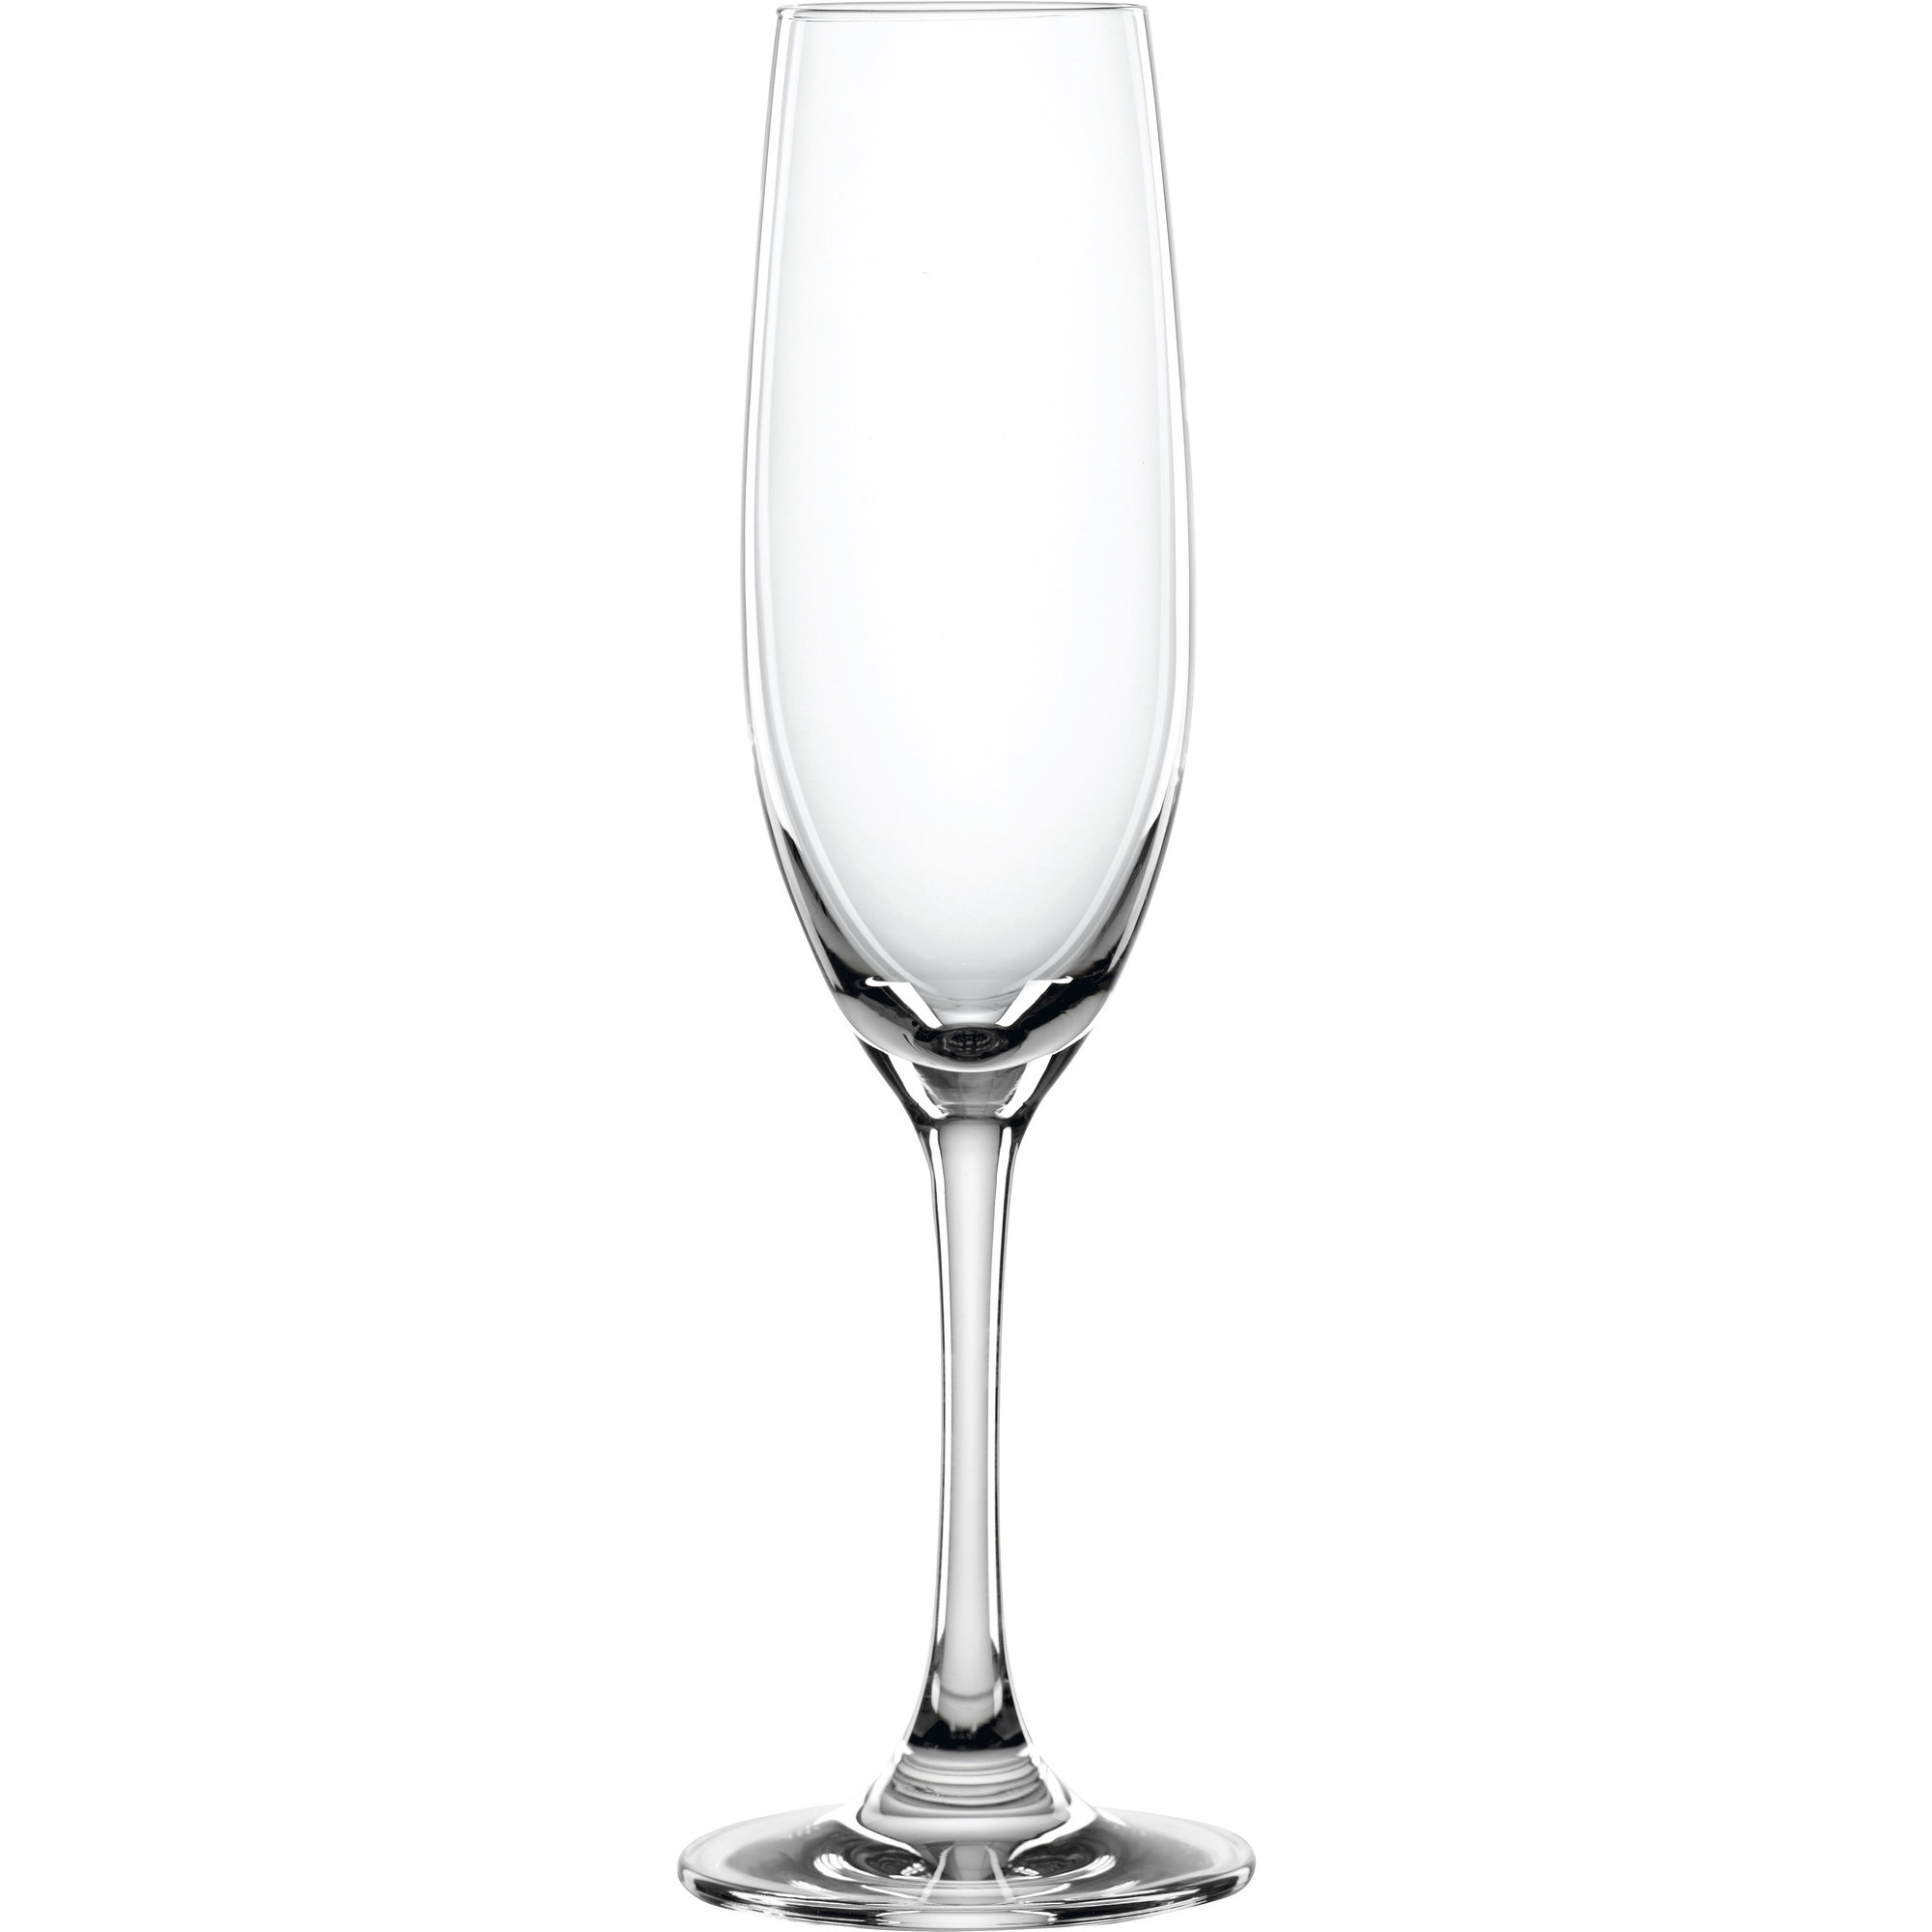 Spiegelau Winelovers Champagneglas 19cl 4pack